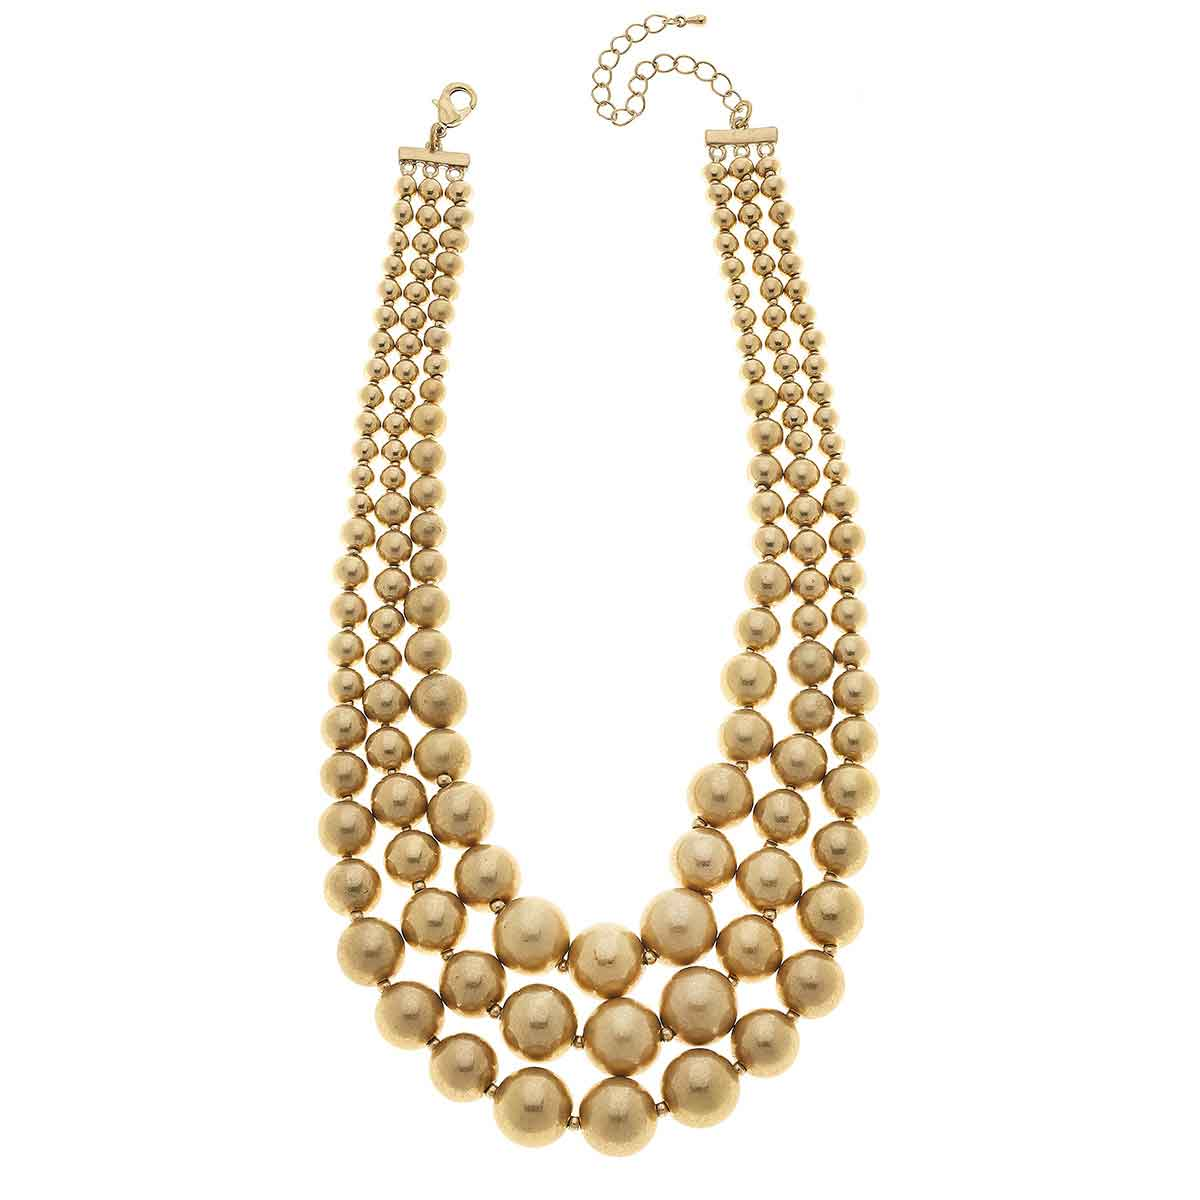 Audrey Layered Statement Necklace in Worn Gold